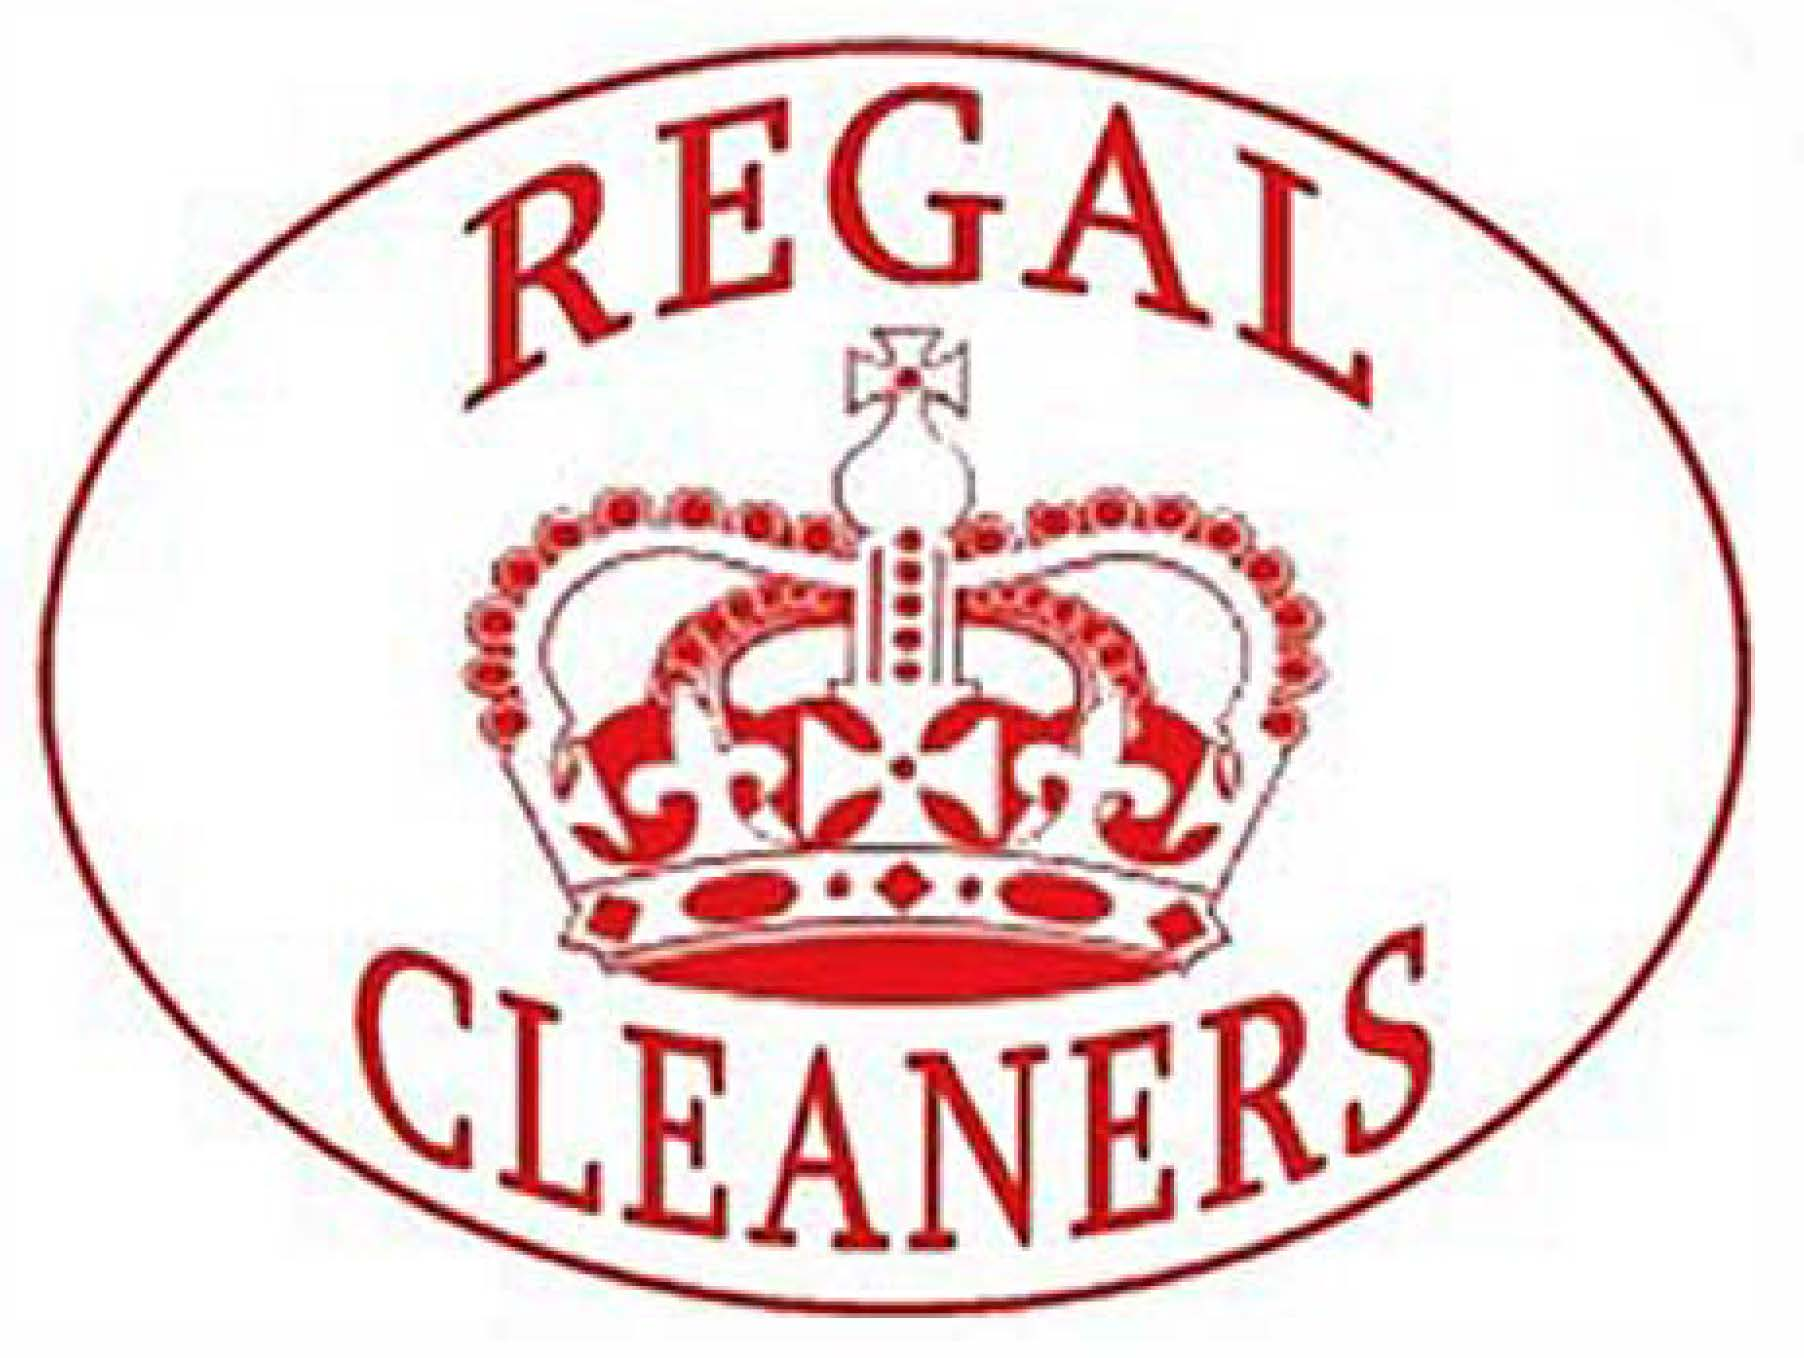 Regal Cleaners - 25% Off Dry Cleaning, 15% Off Laundry, 20% Off Alterations